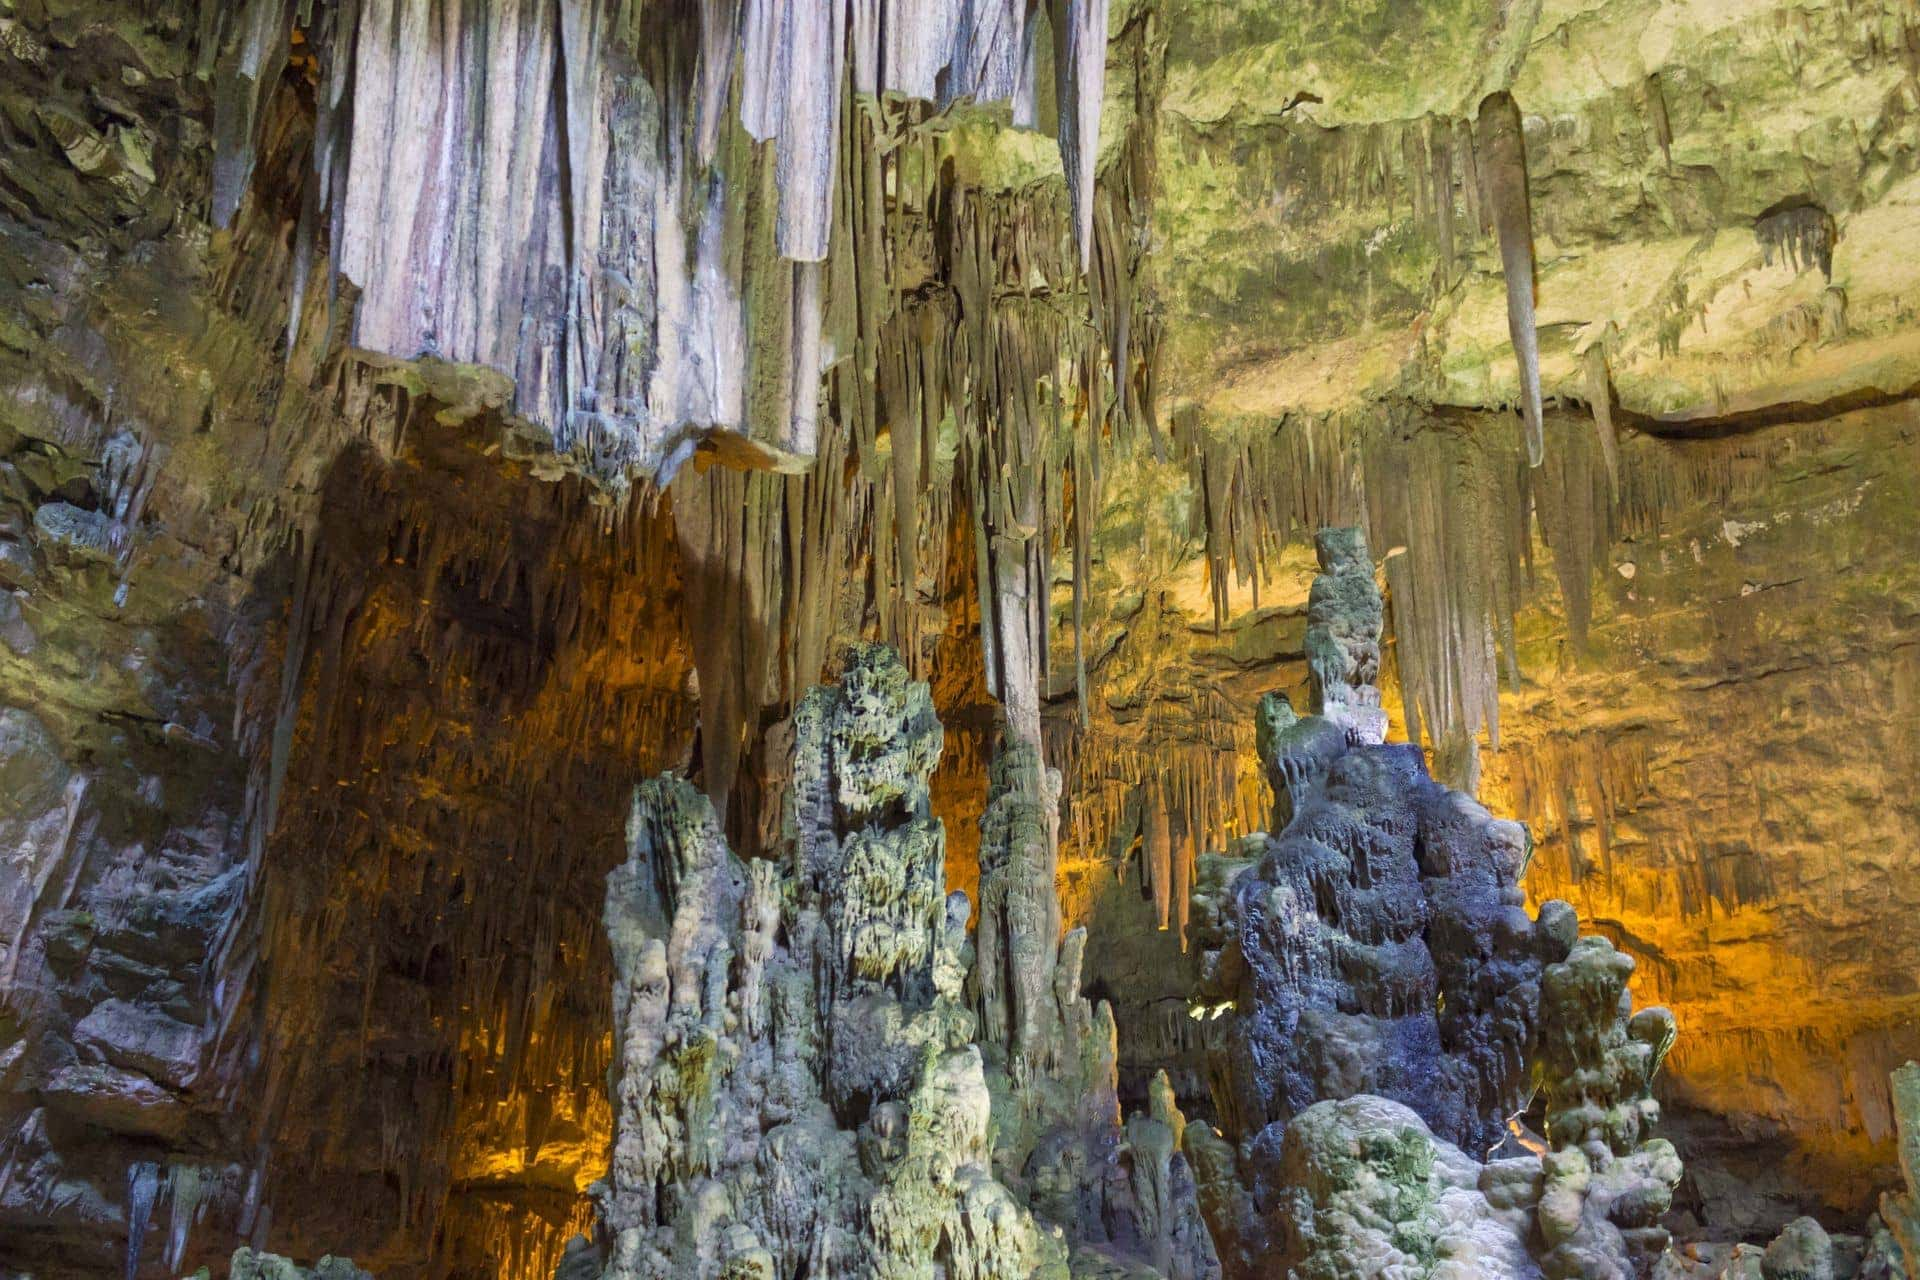 trip to cave|caves travel planner app